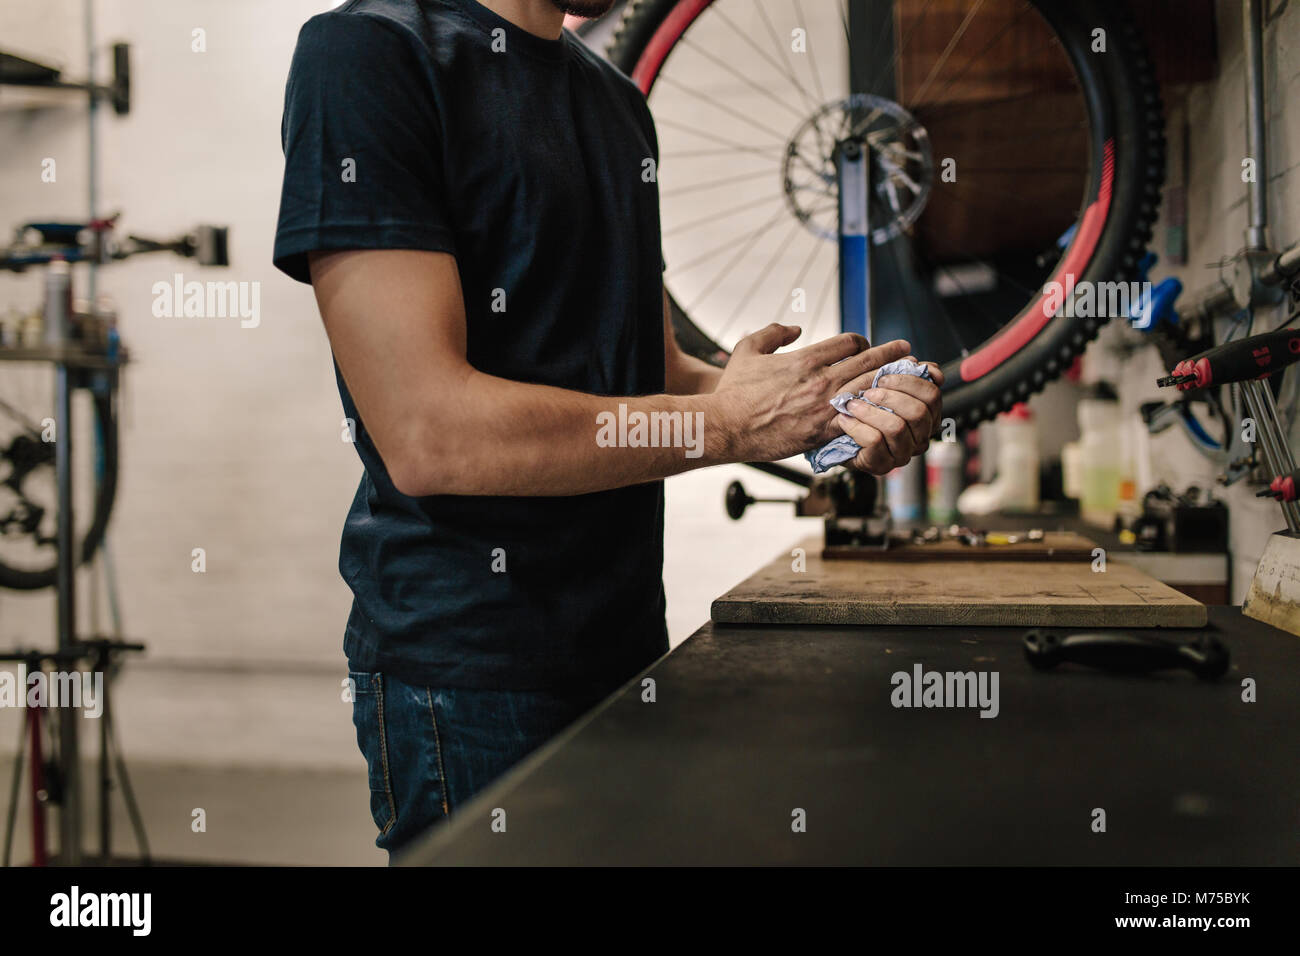 Worker cleaning his hands after repairing bicycle in